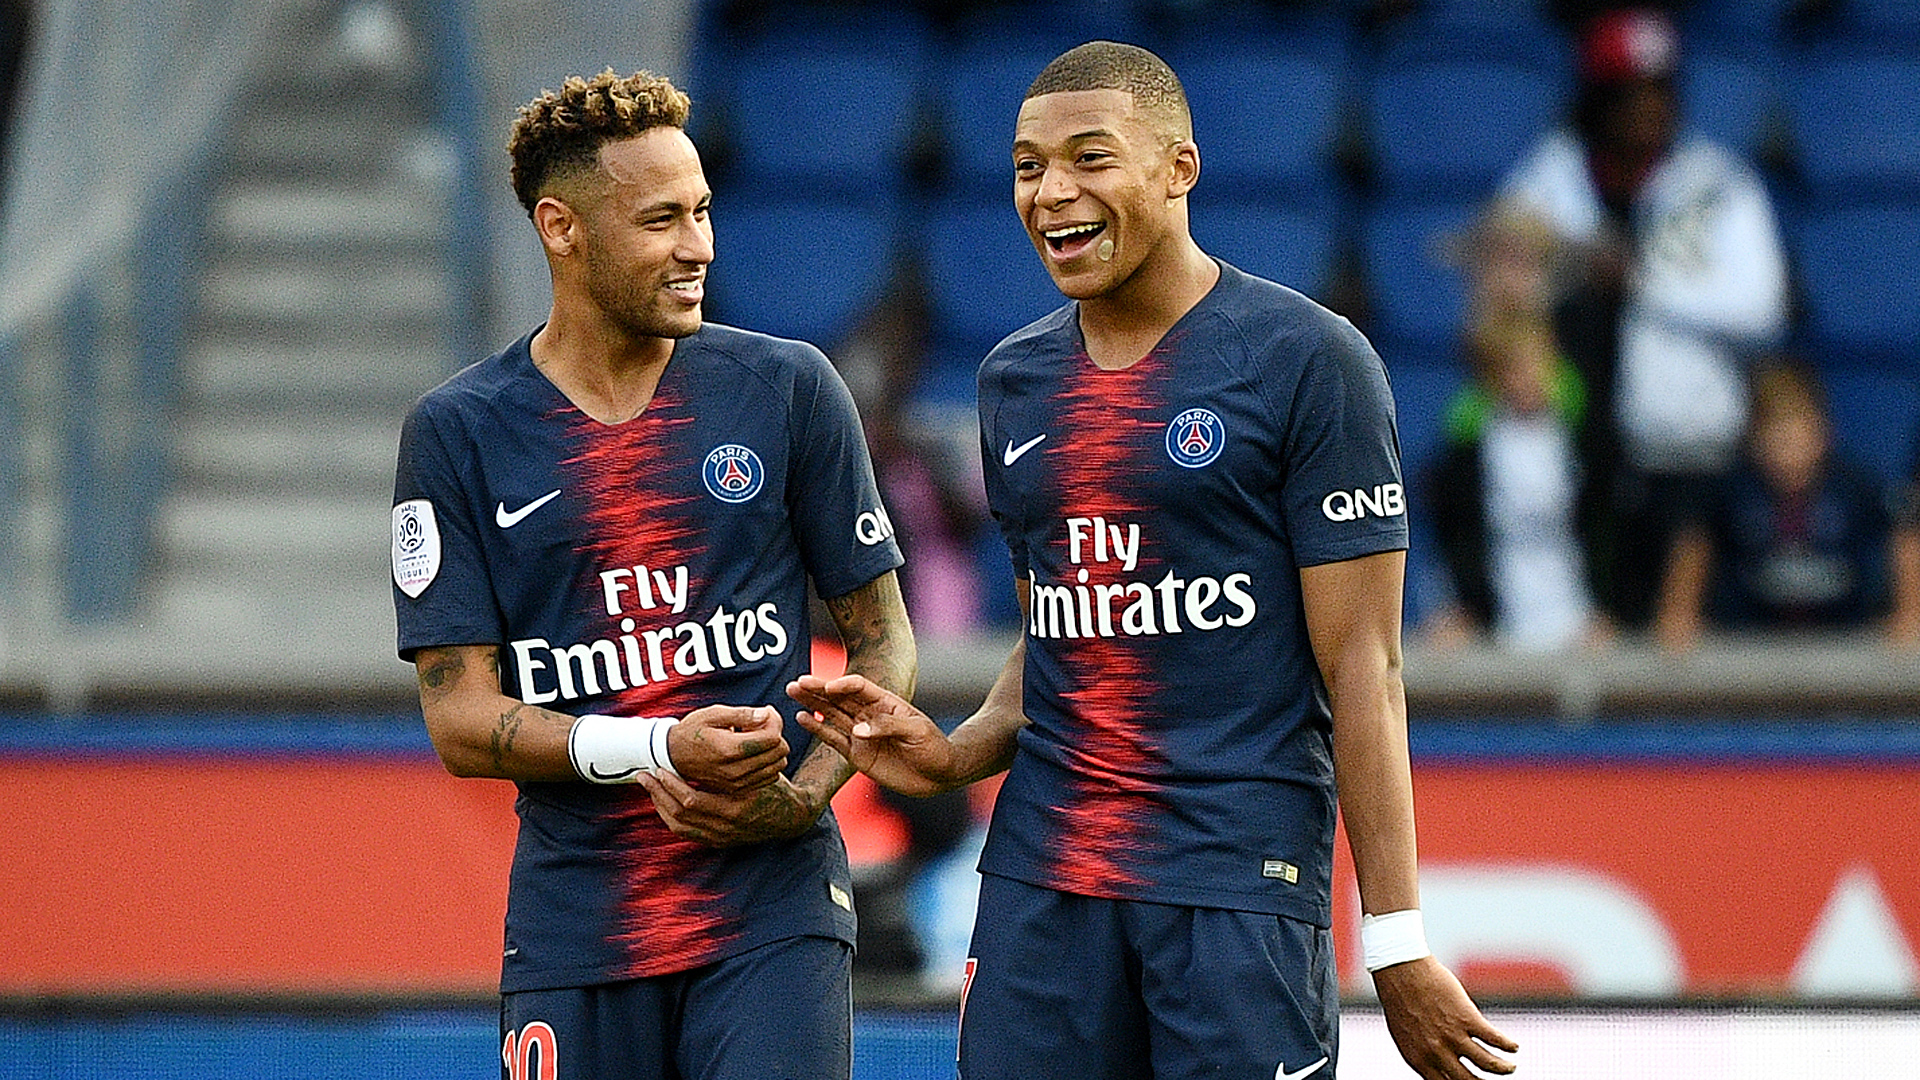 Neymar Kylian Mbappe Are Made To Play Together Barcelona Star